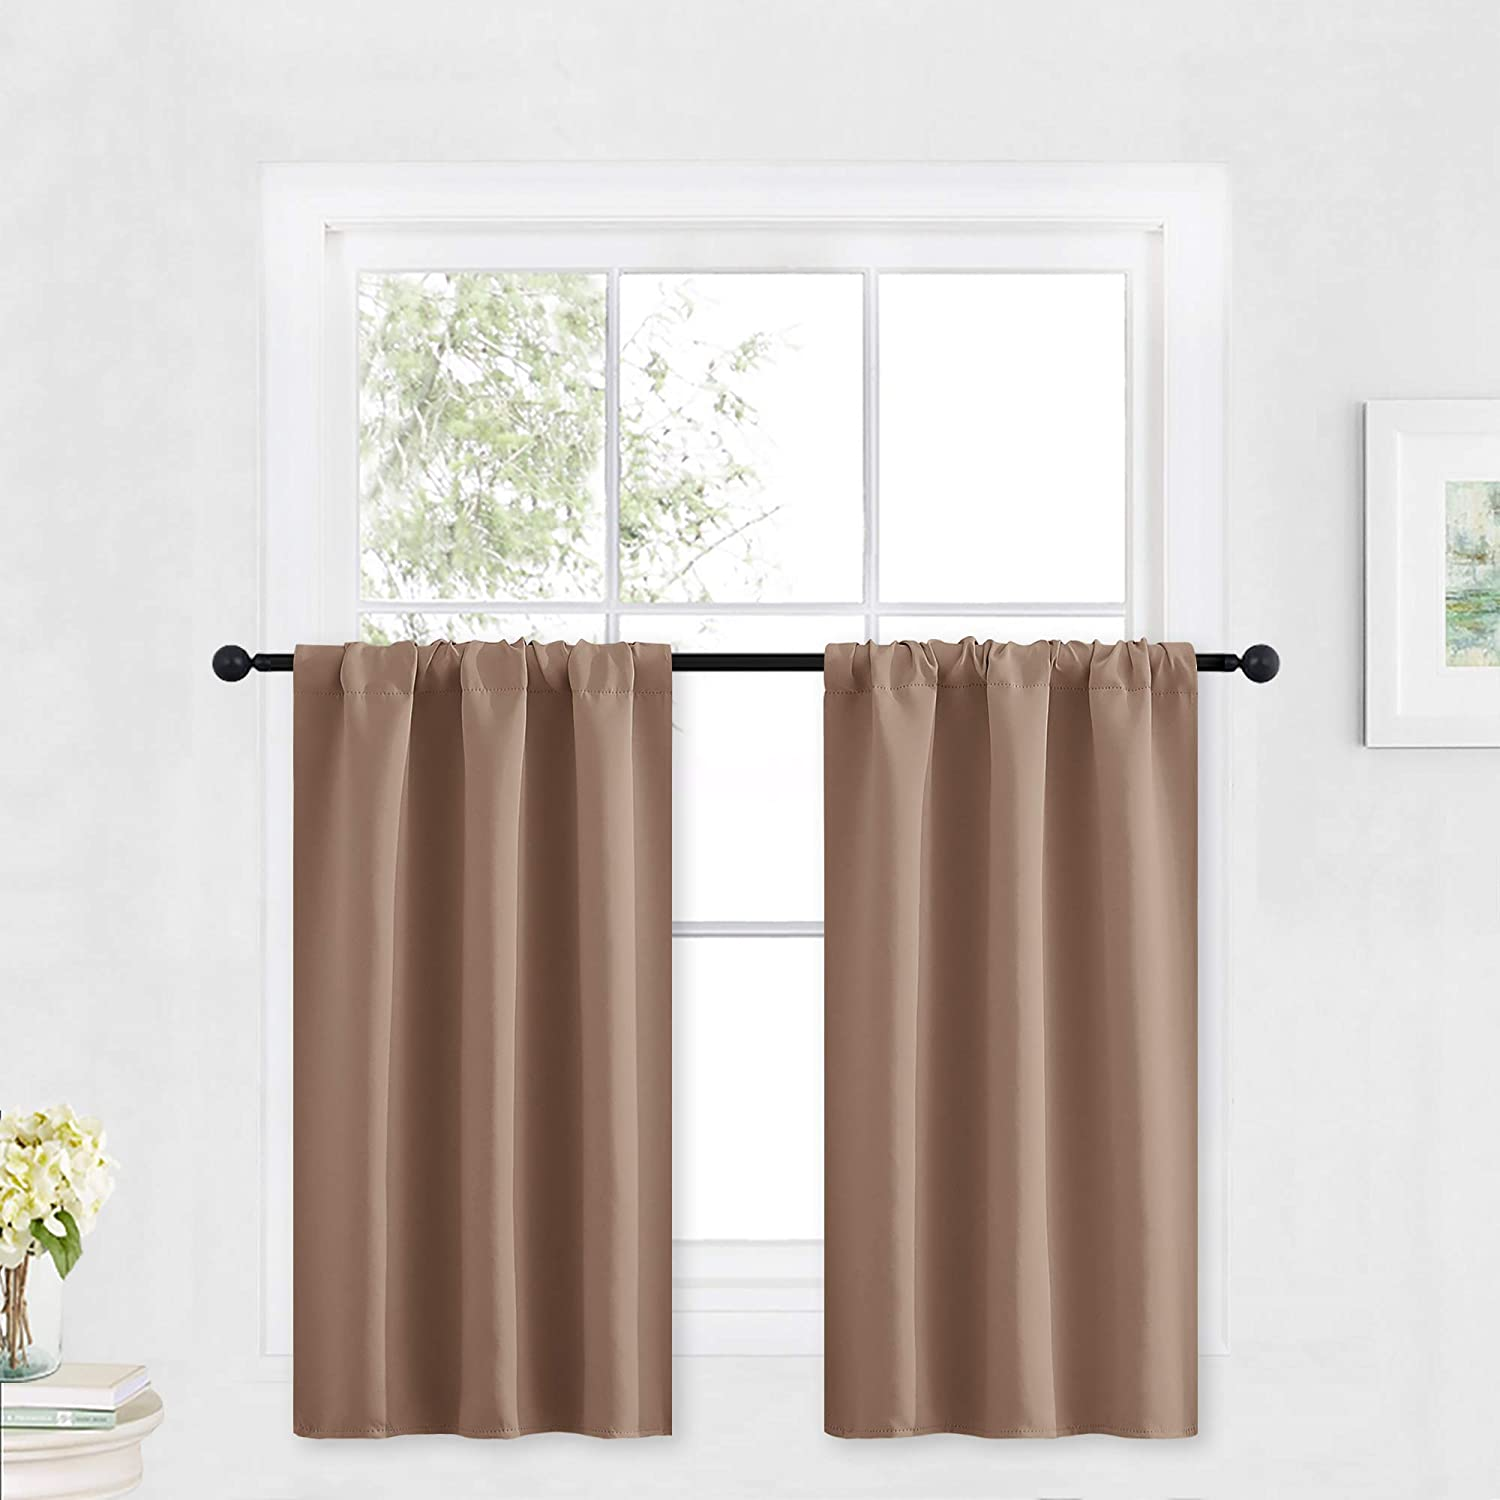 RYB HOME Small Window Curtains - Light Block Privacy Portable Curtains for Bedroom Kitchen Cabinet Kid Basement RV Curtains, Wide 29 x Long 36 per Panel, Mocha, 2 Pcs